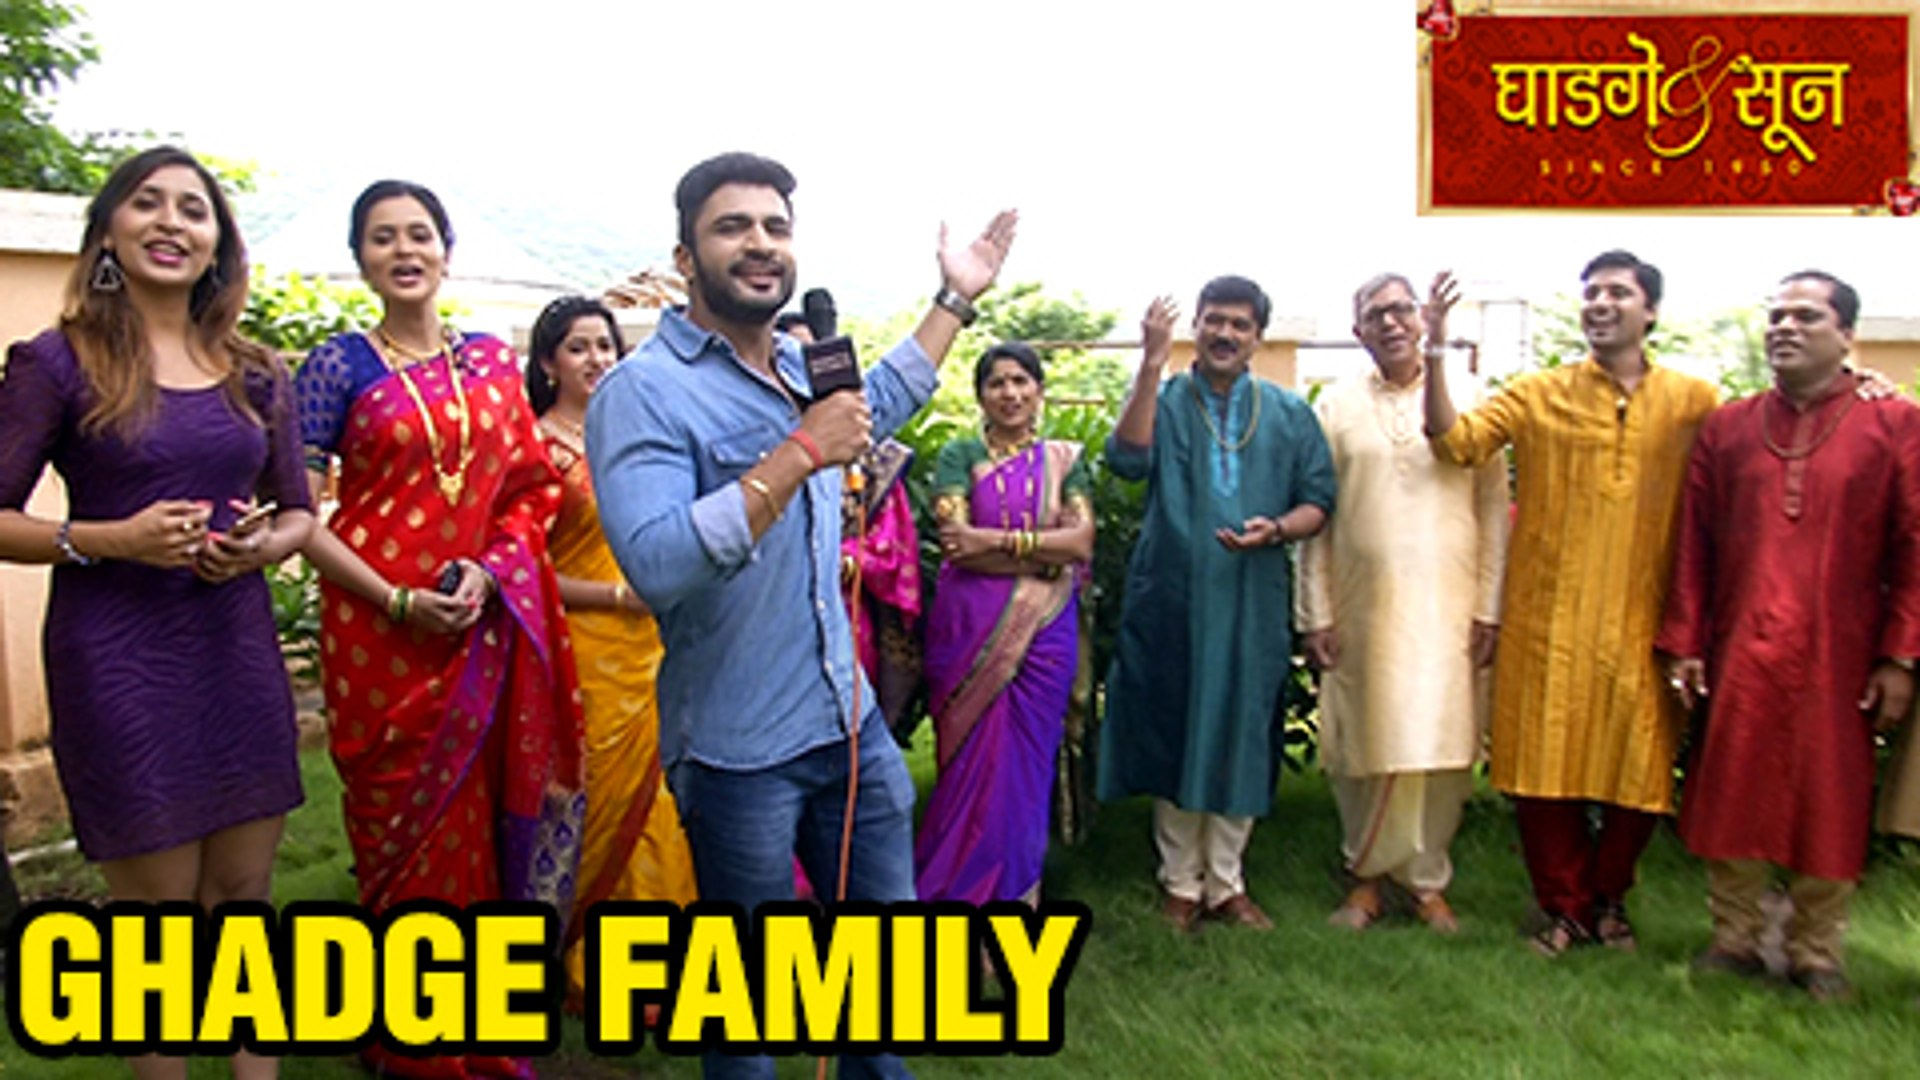 Ghadge & Suun | Ghadge Family Introduction| Chinmay Udgirkar, Atisha Naik &  Richa Agnihotri